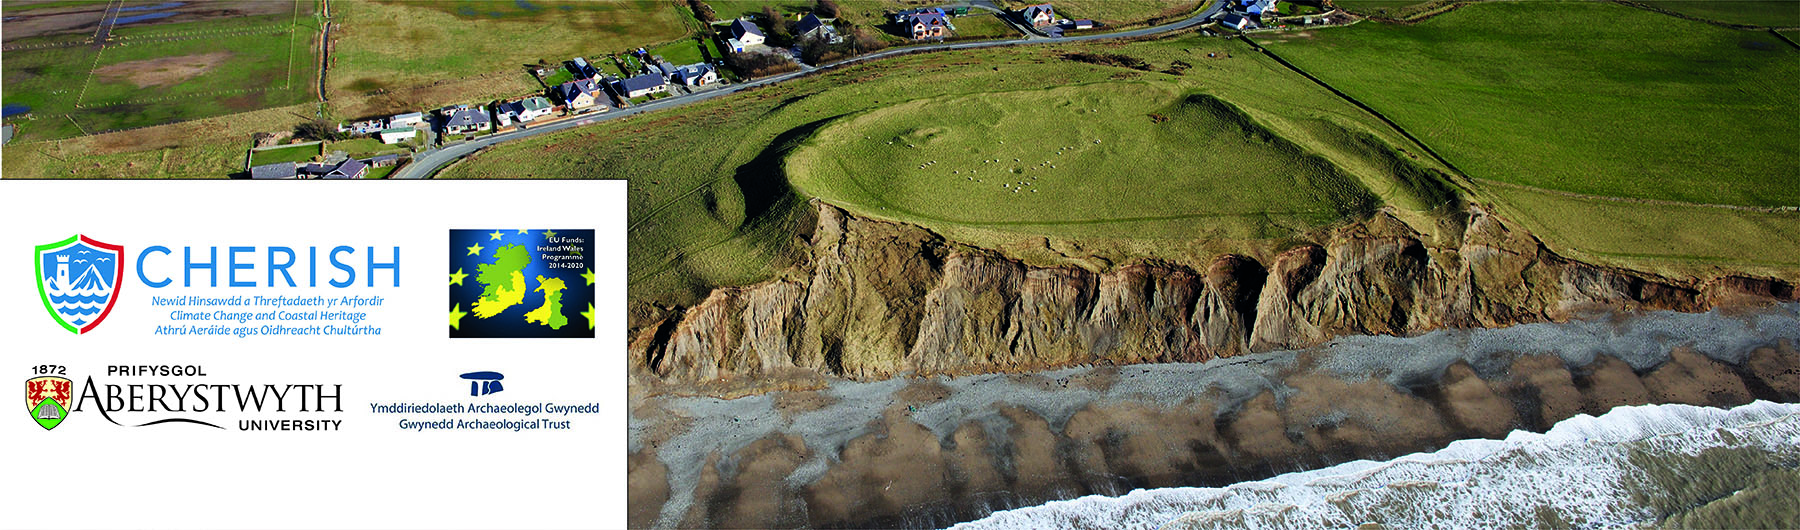 The Royal Commission Christmas Lecture: A Story of Sand, Sea and Storms: Uncovering the Secrets of Dinas Dinlle Hillfort in Gwynedd - Bangor University